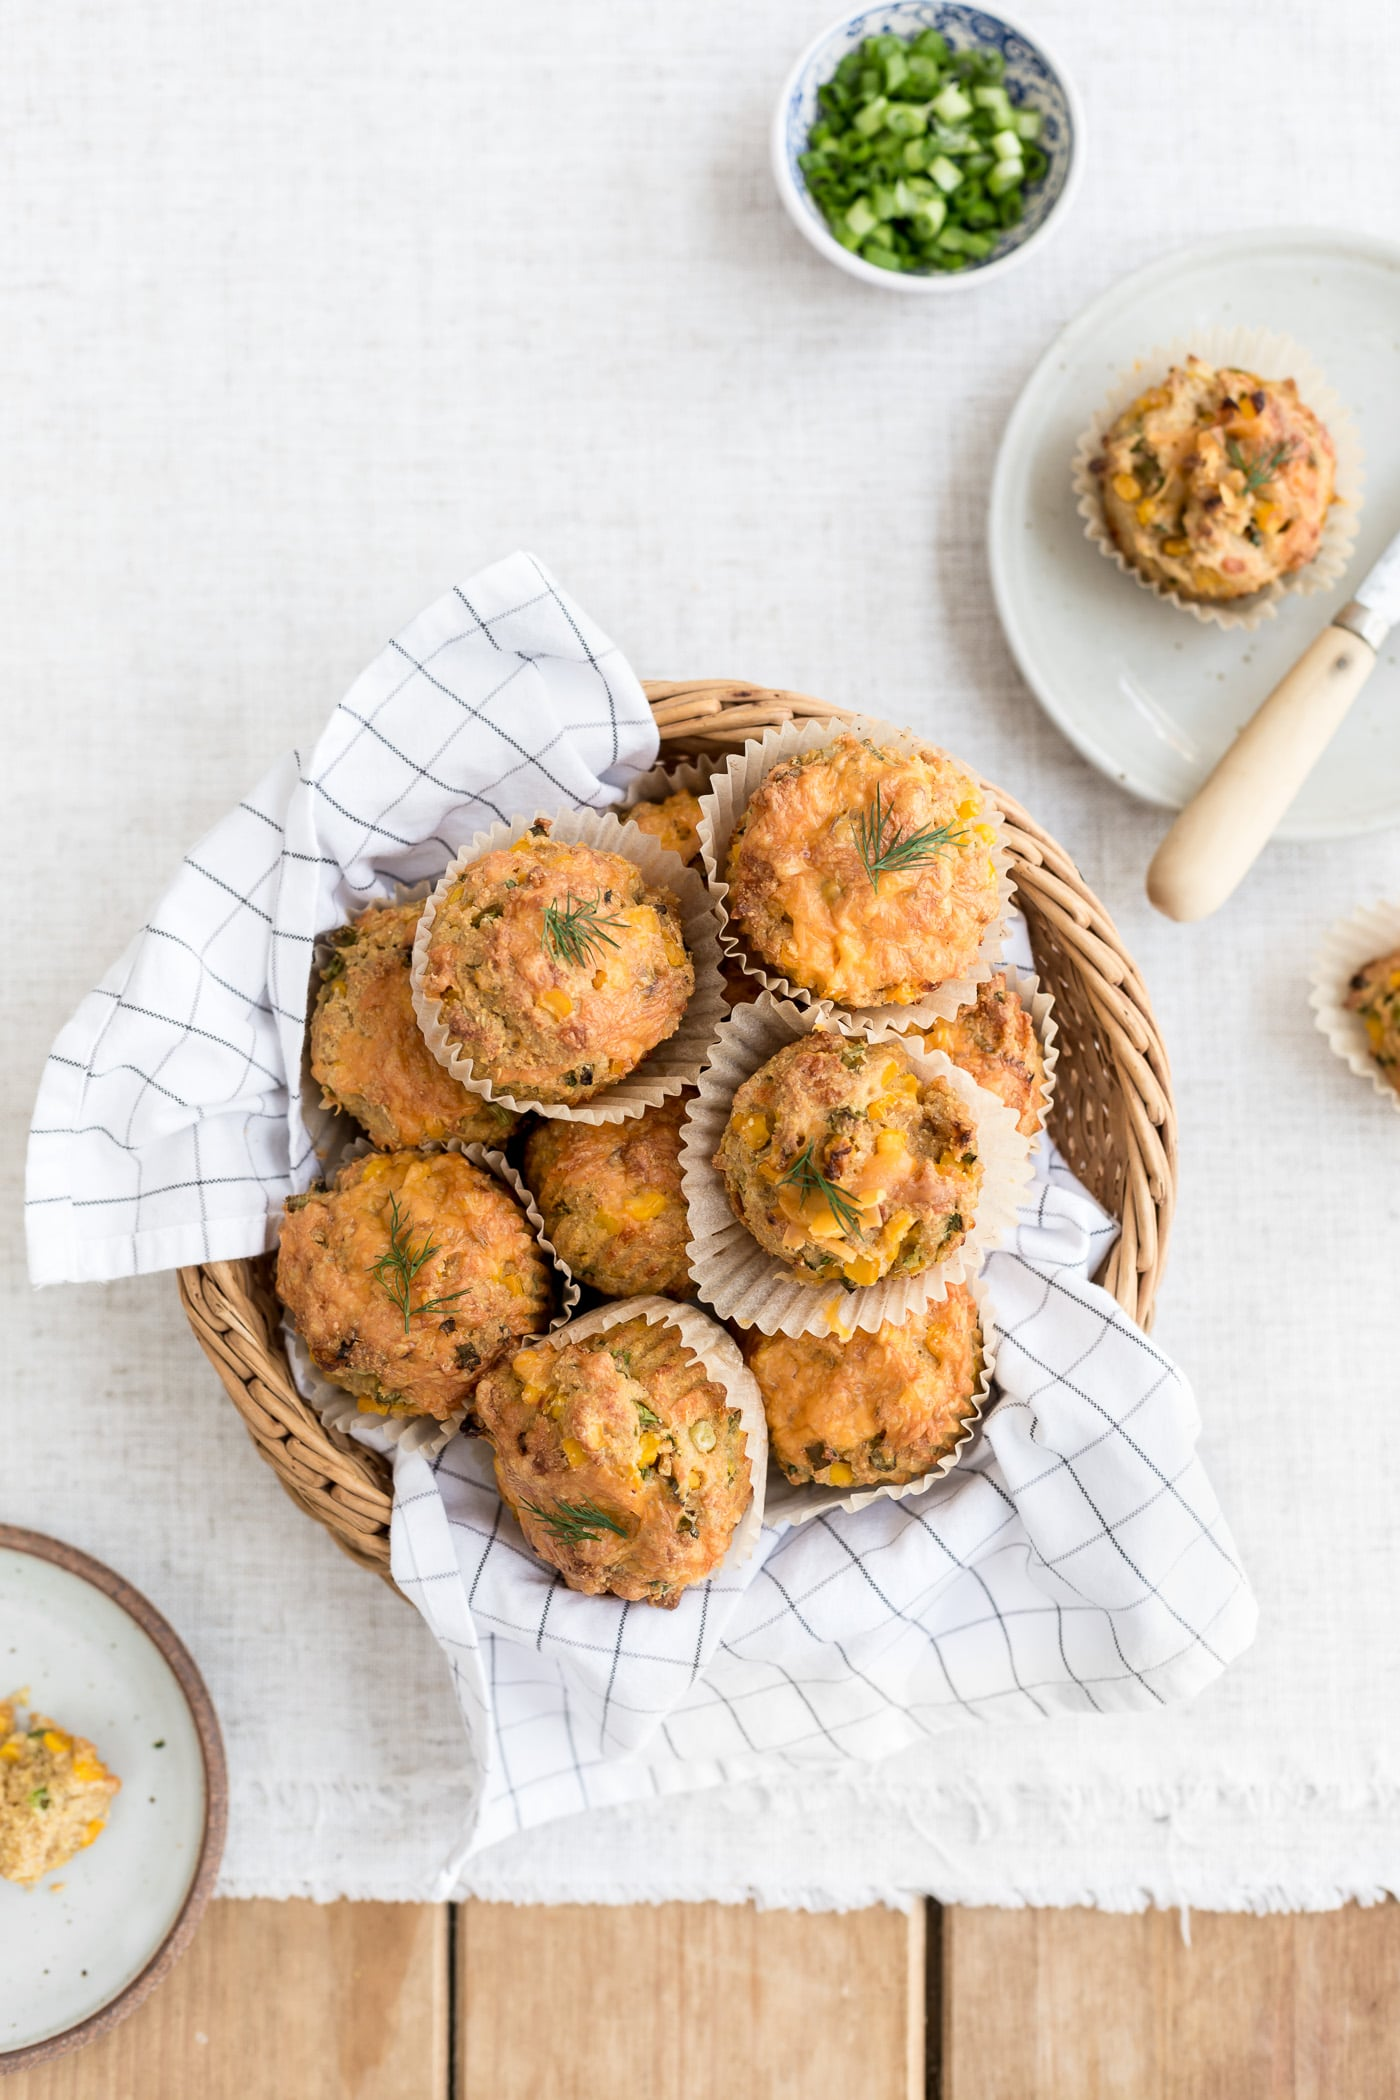 A basket full of freshly baked cornbread muffins along with a few half eaten ones are photographed from the top view.